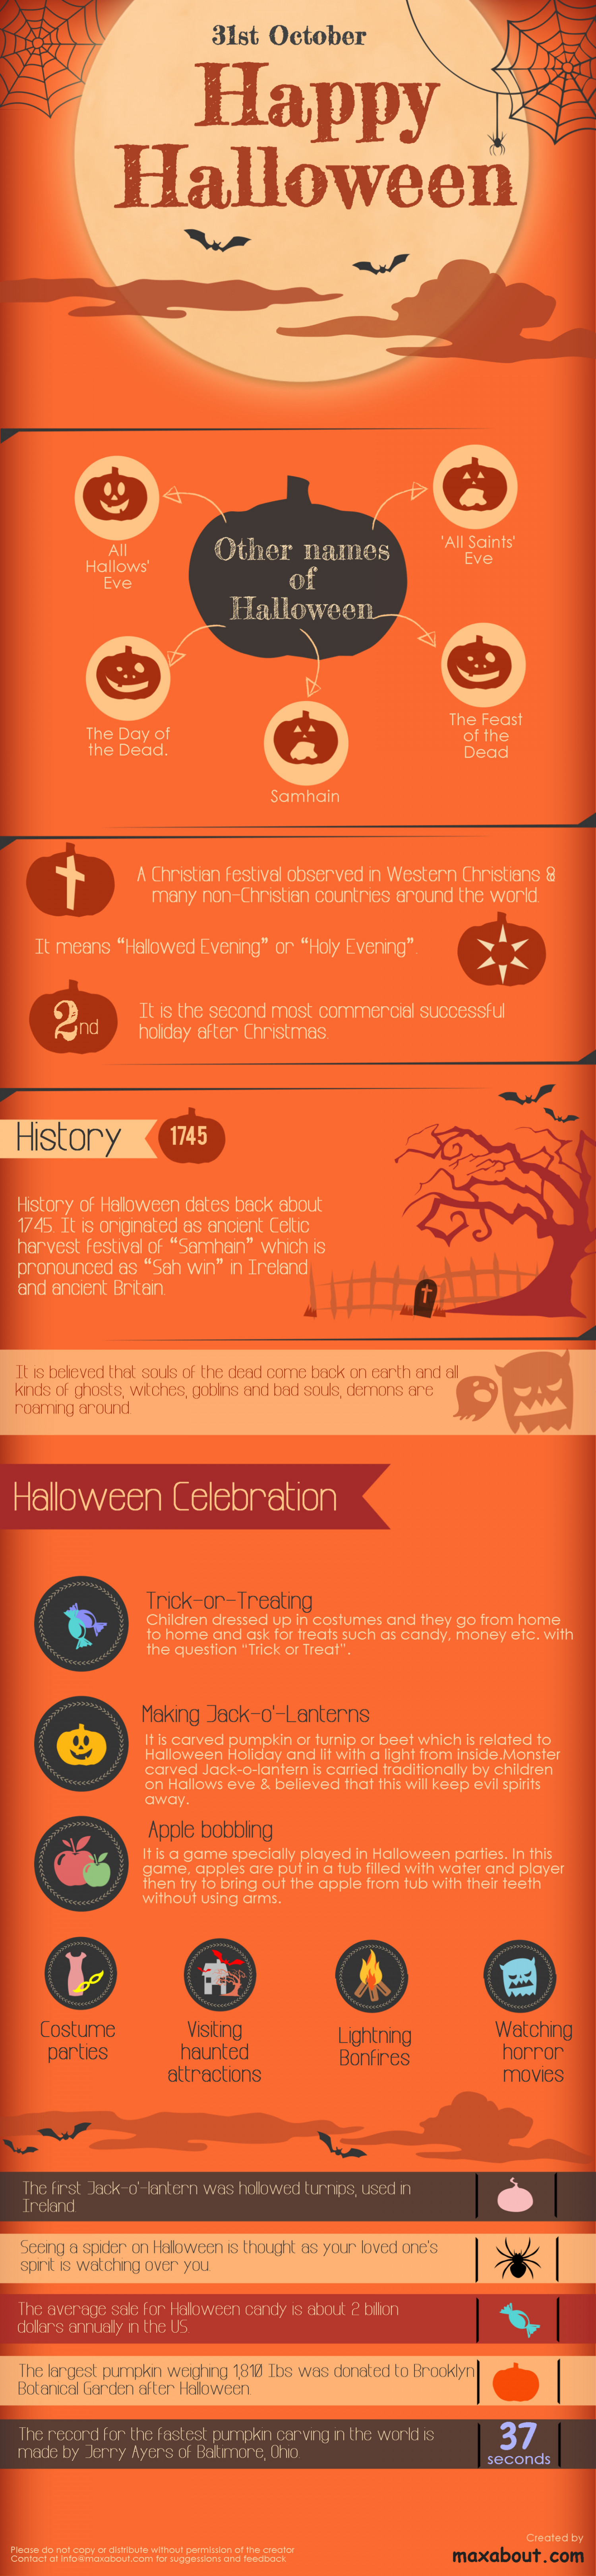 Interesting Facts About Halloween! Infographic